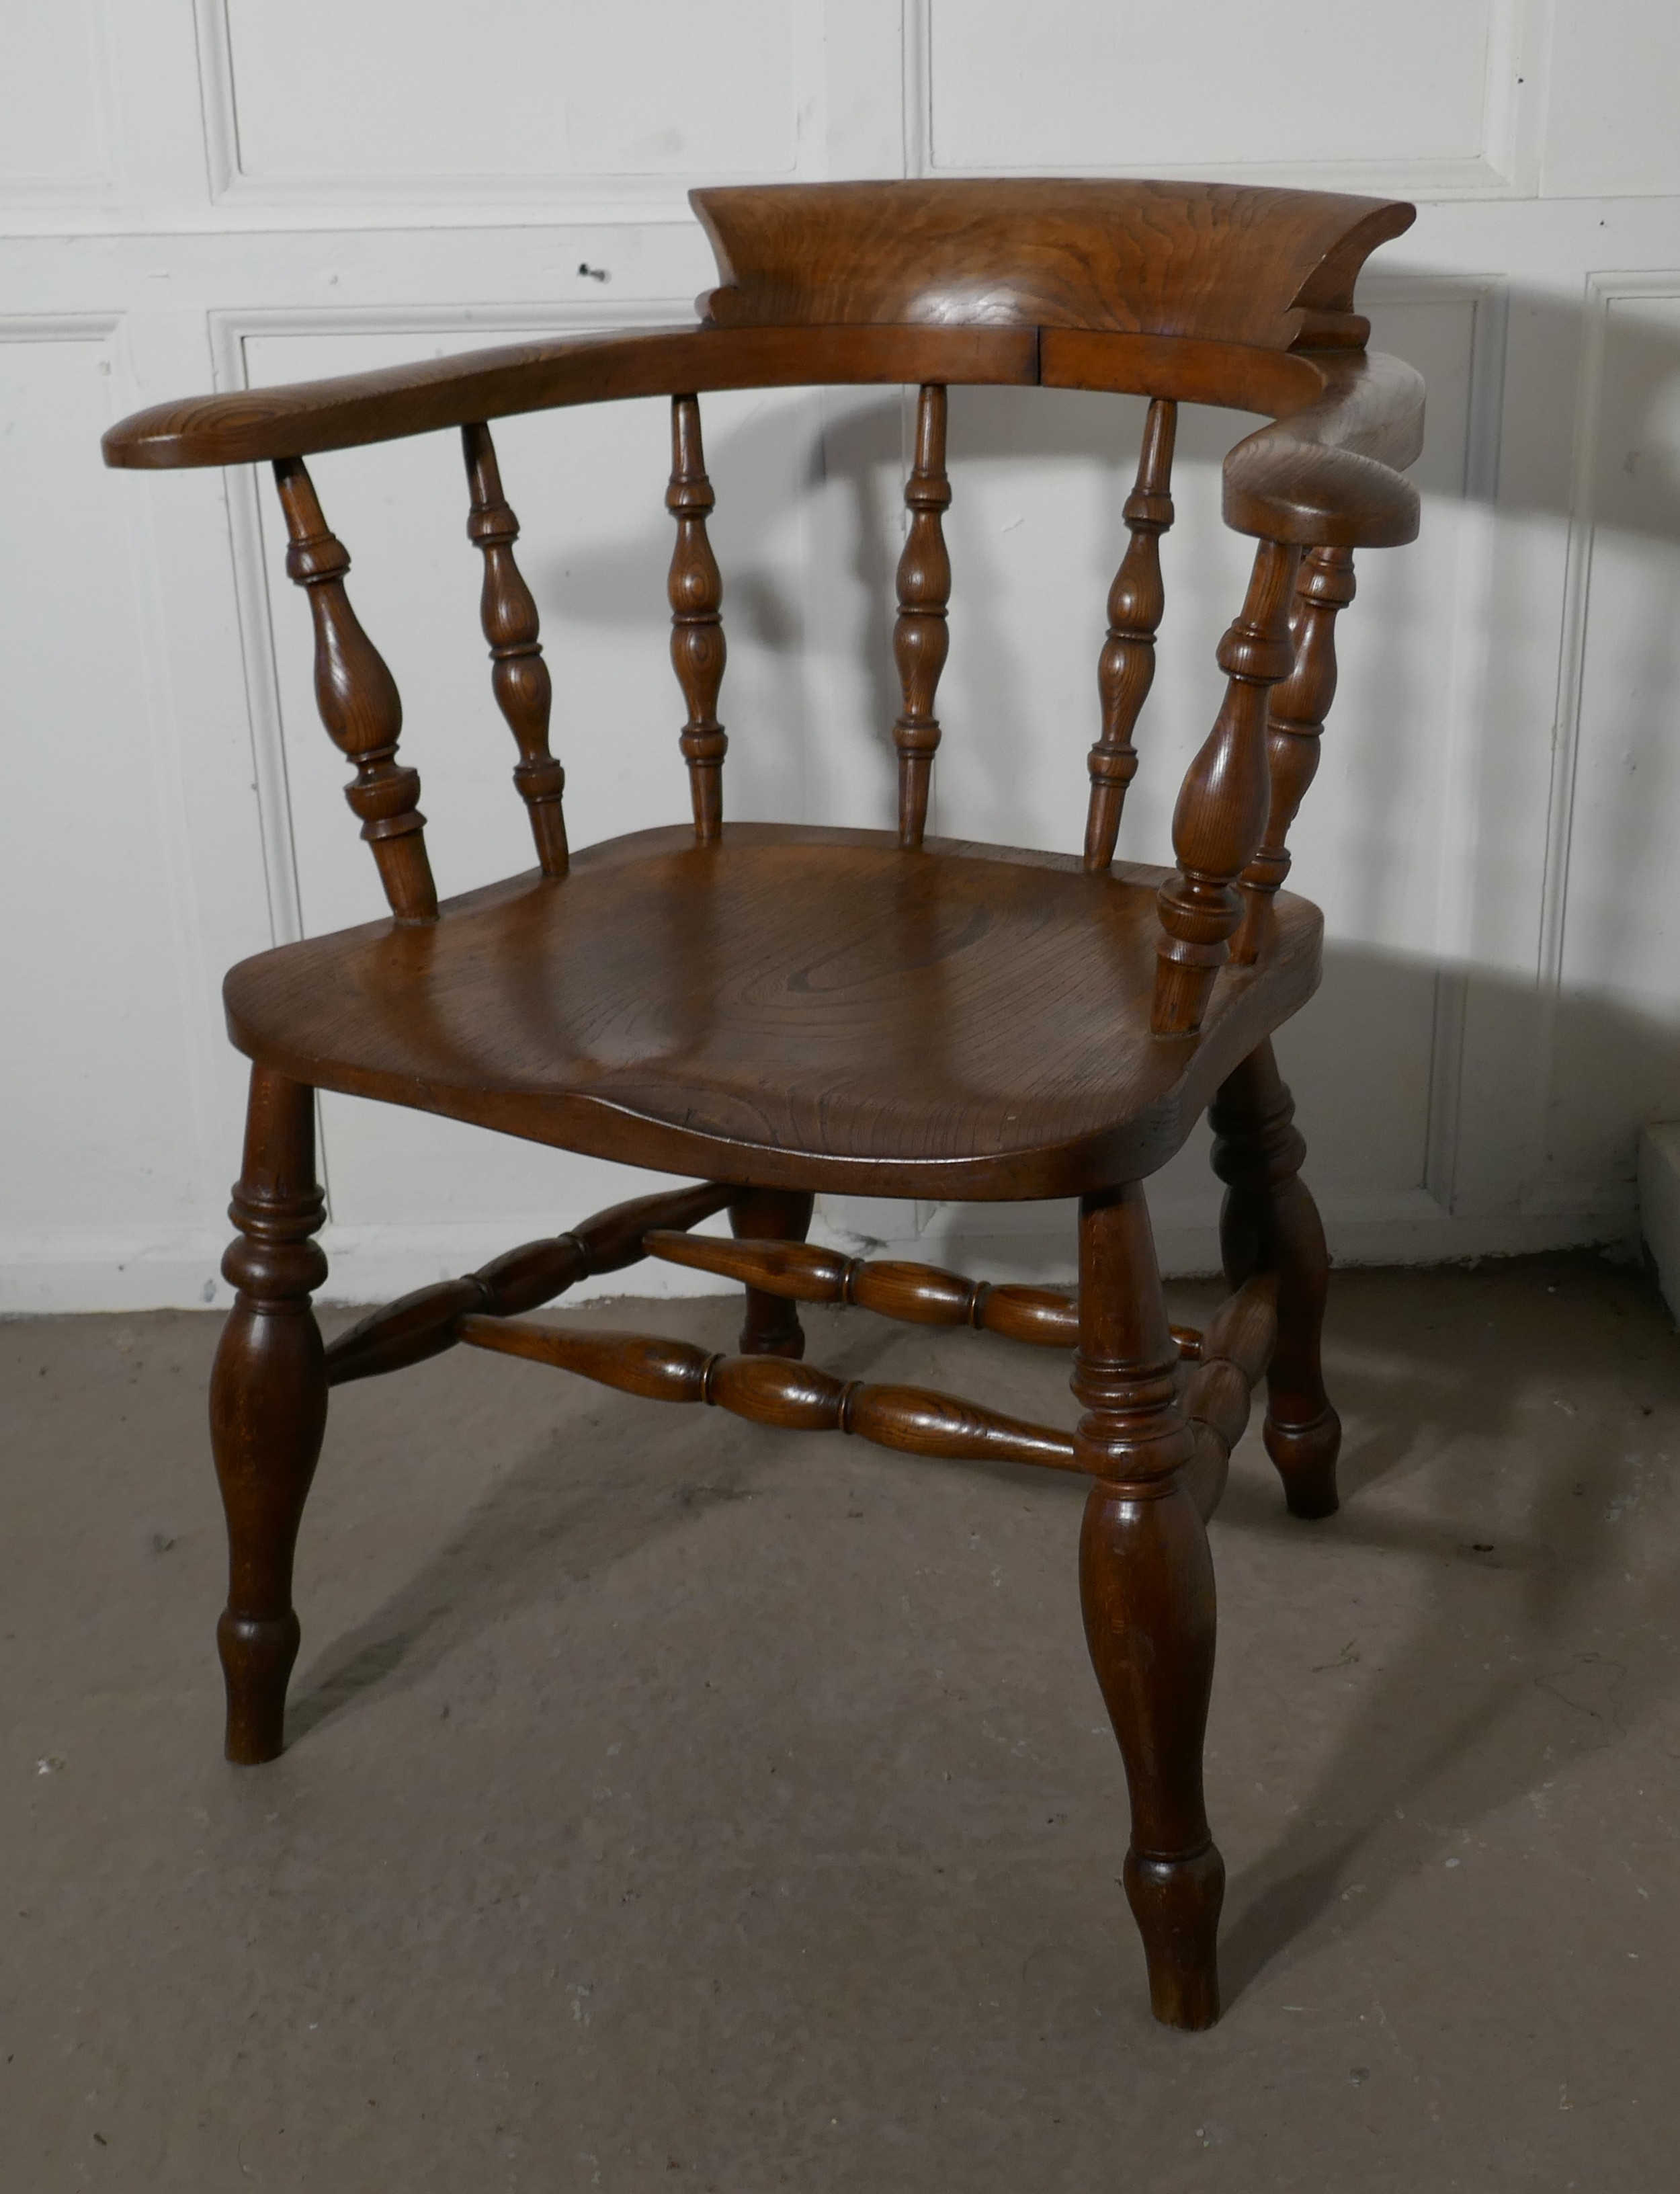 19th century elm ash smokers bow office or desk chair